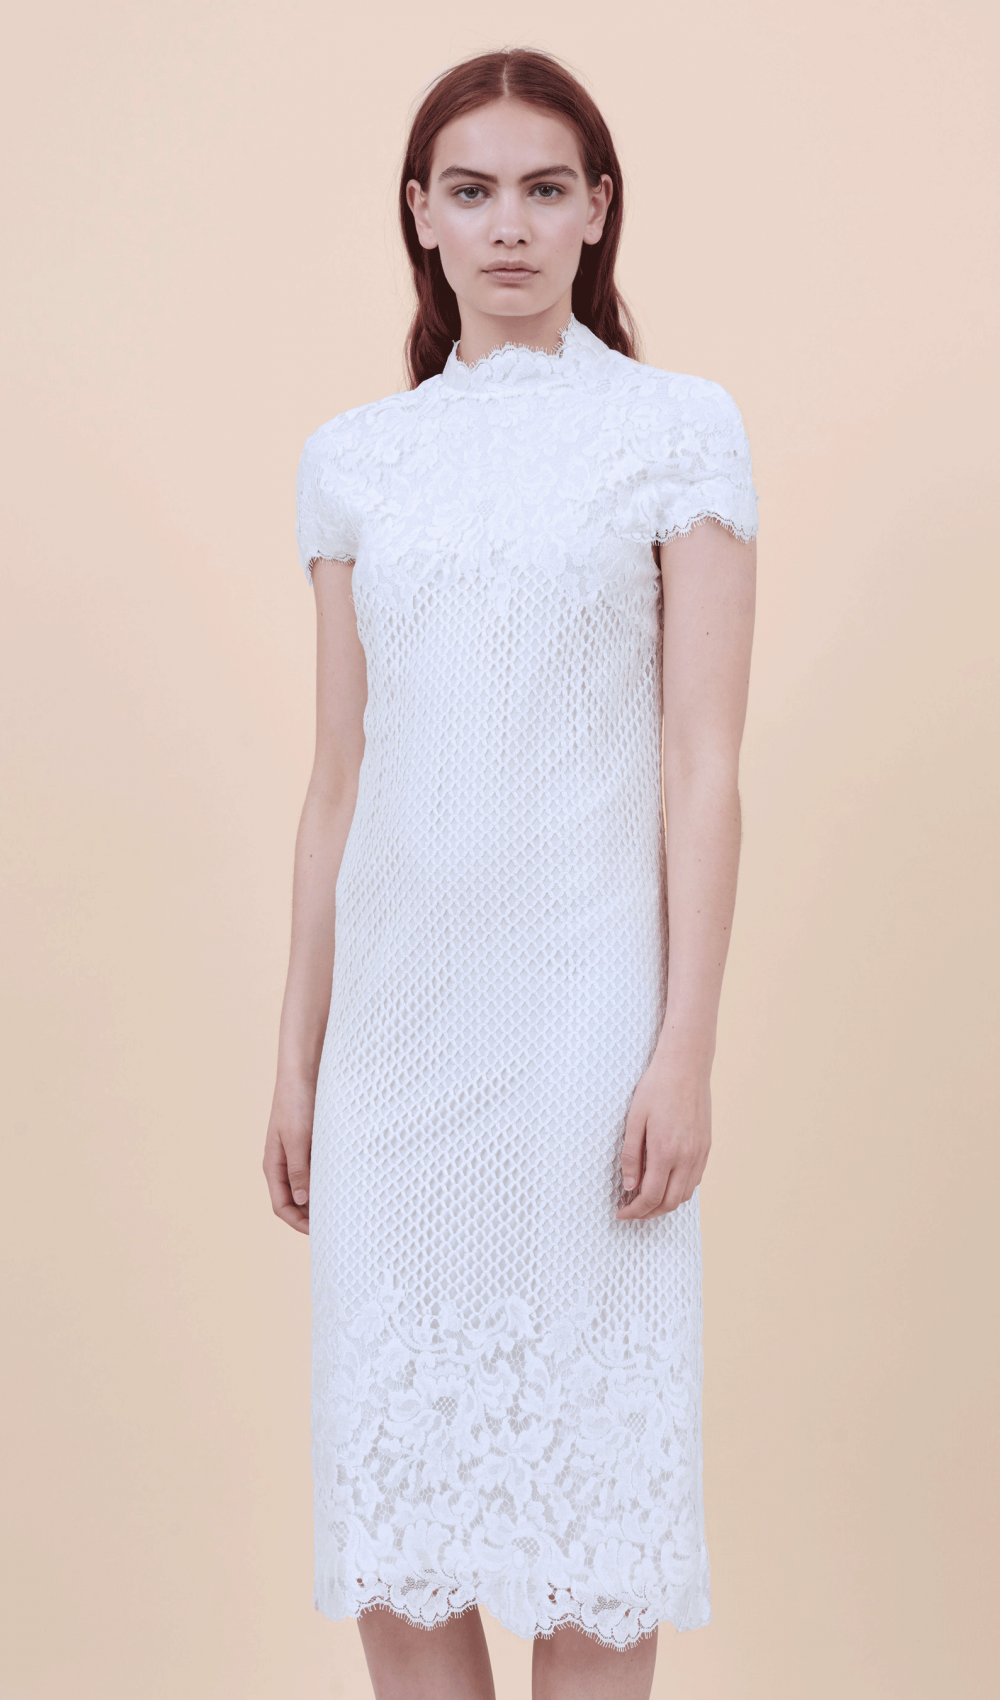 Loobook Calais Lace Dress